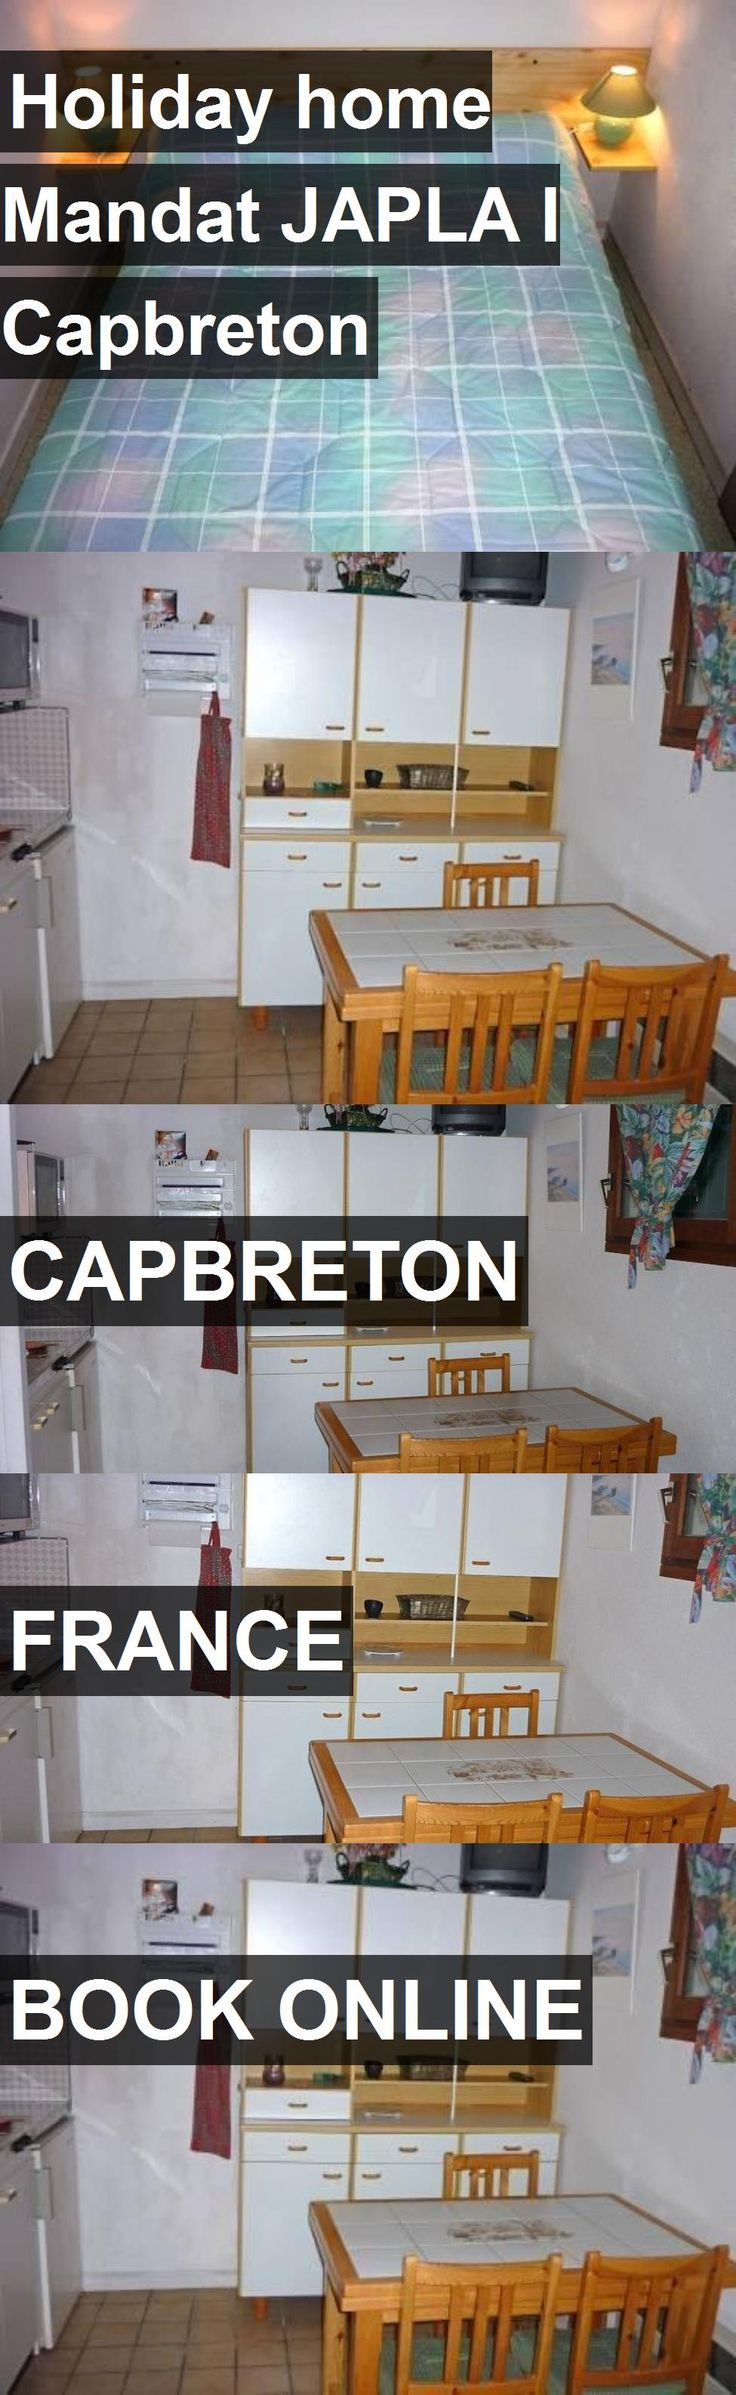 Hotel Holiday home Mandat JAPLA I Capbreton in Capbreton, France. For more information, photos, reviews and best prices please follow the link. #France #Capbreton #HolidayhomeMandatJAPLAICapbreton #hotel #travel #vacation